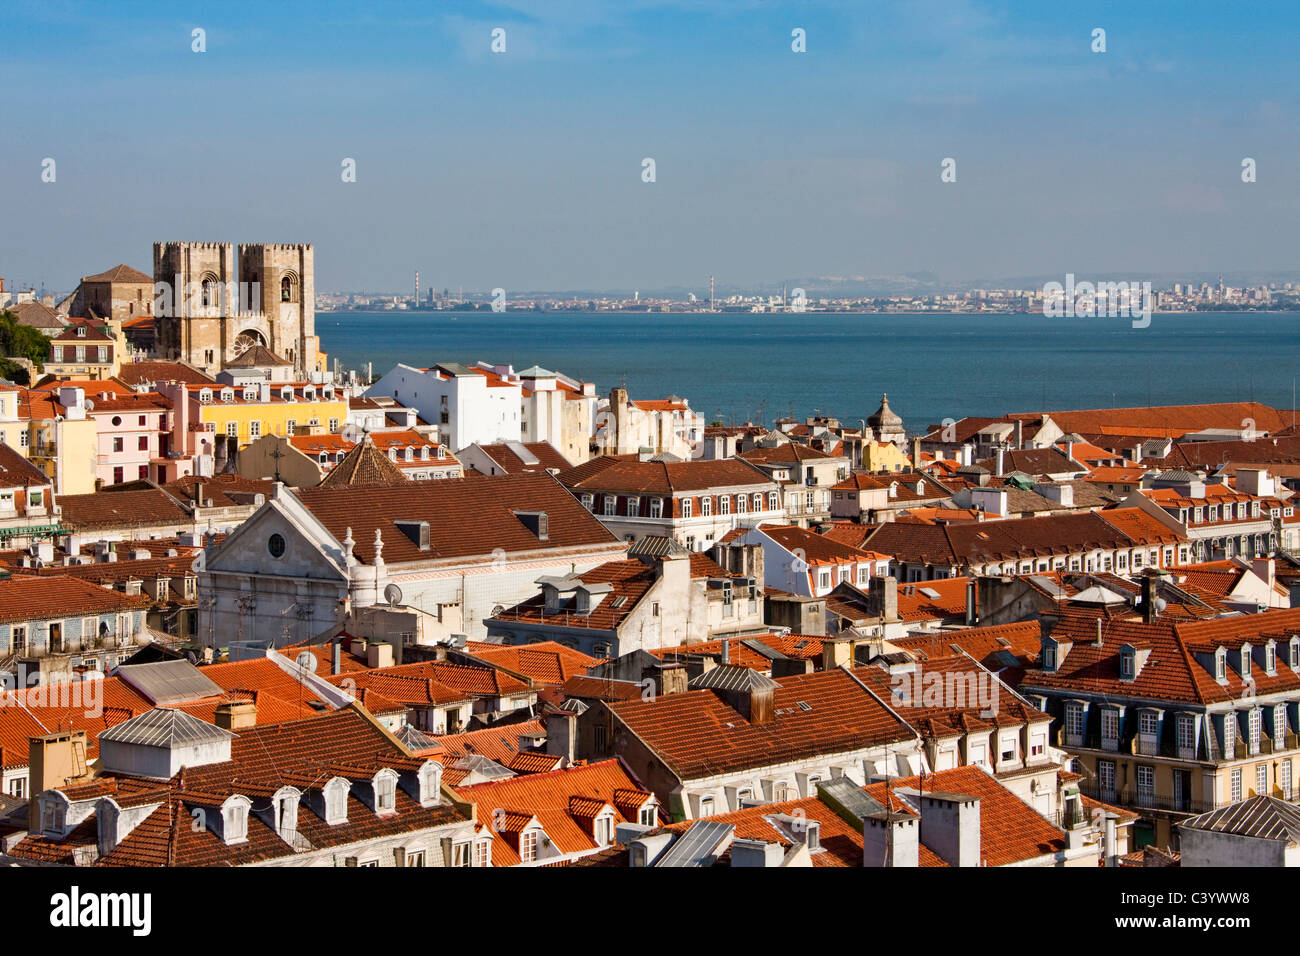 Portugal, Europe, Lisbon, Alfama, Se, cathedral, Old Town, sea - Stock Image